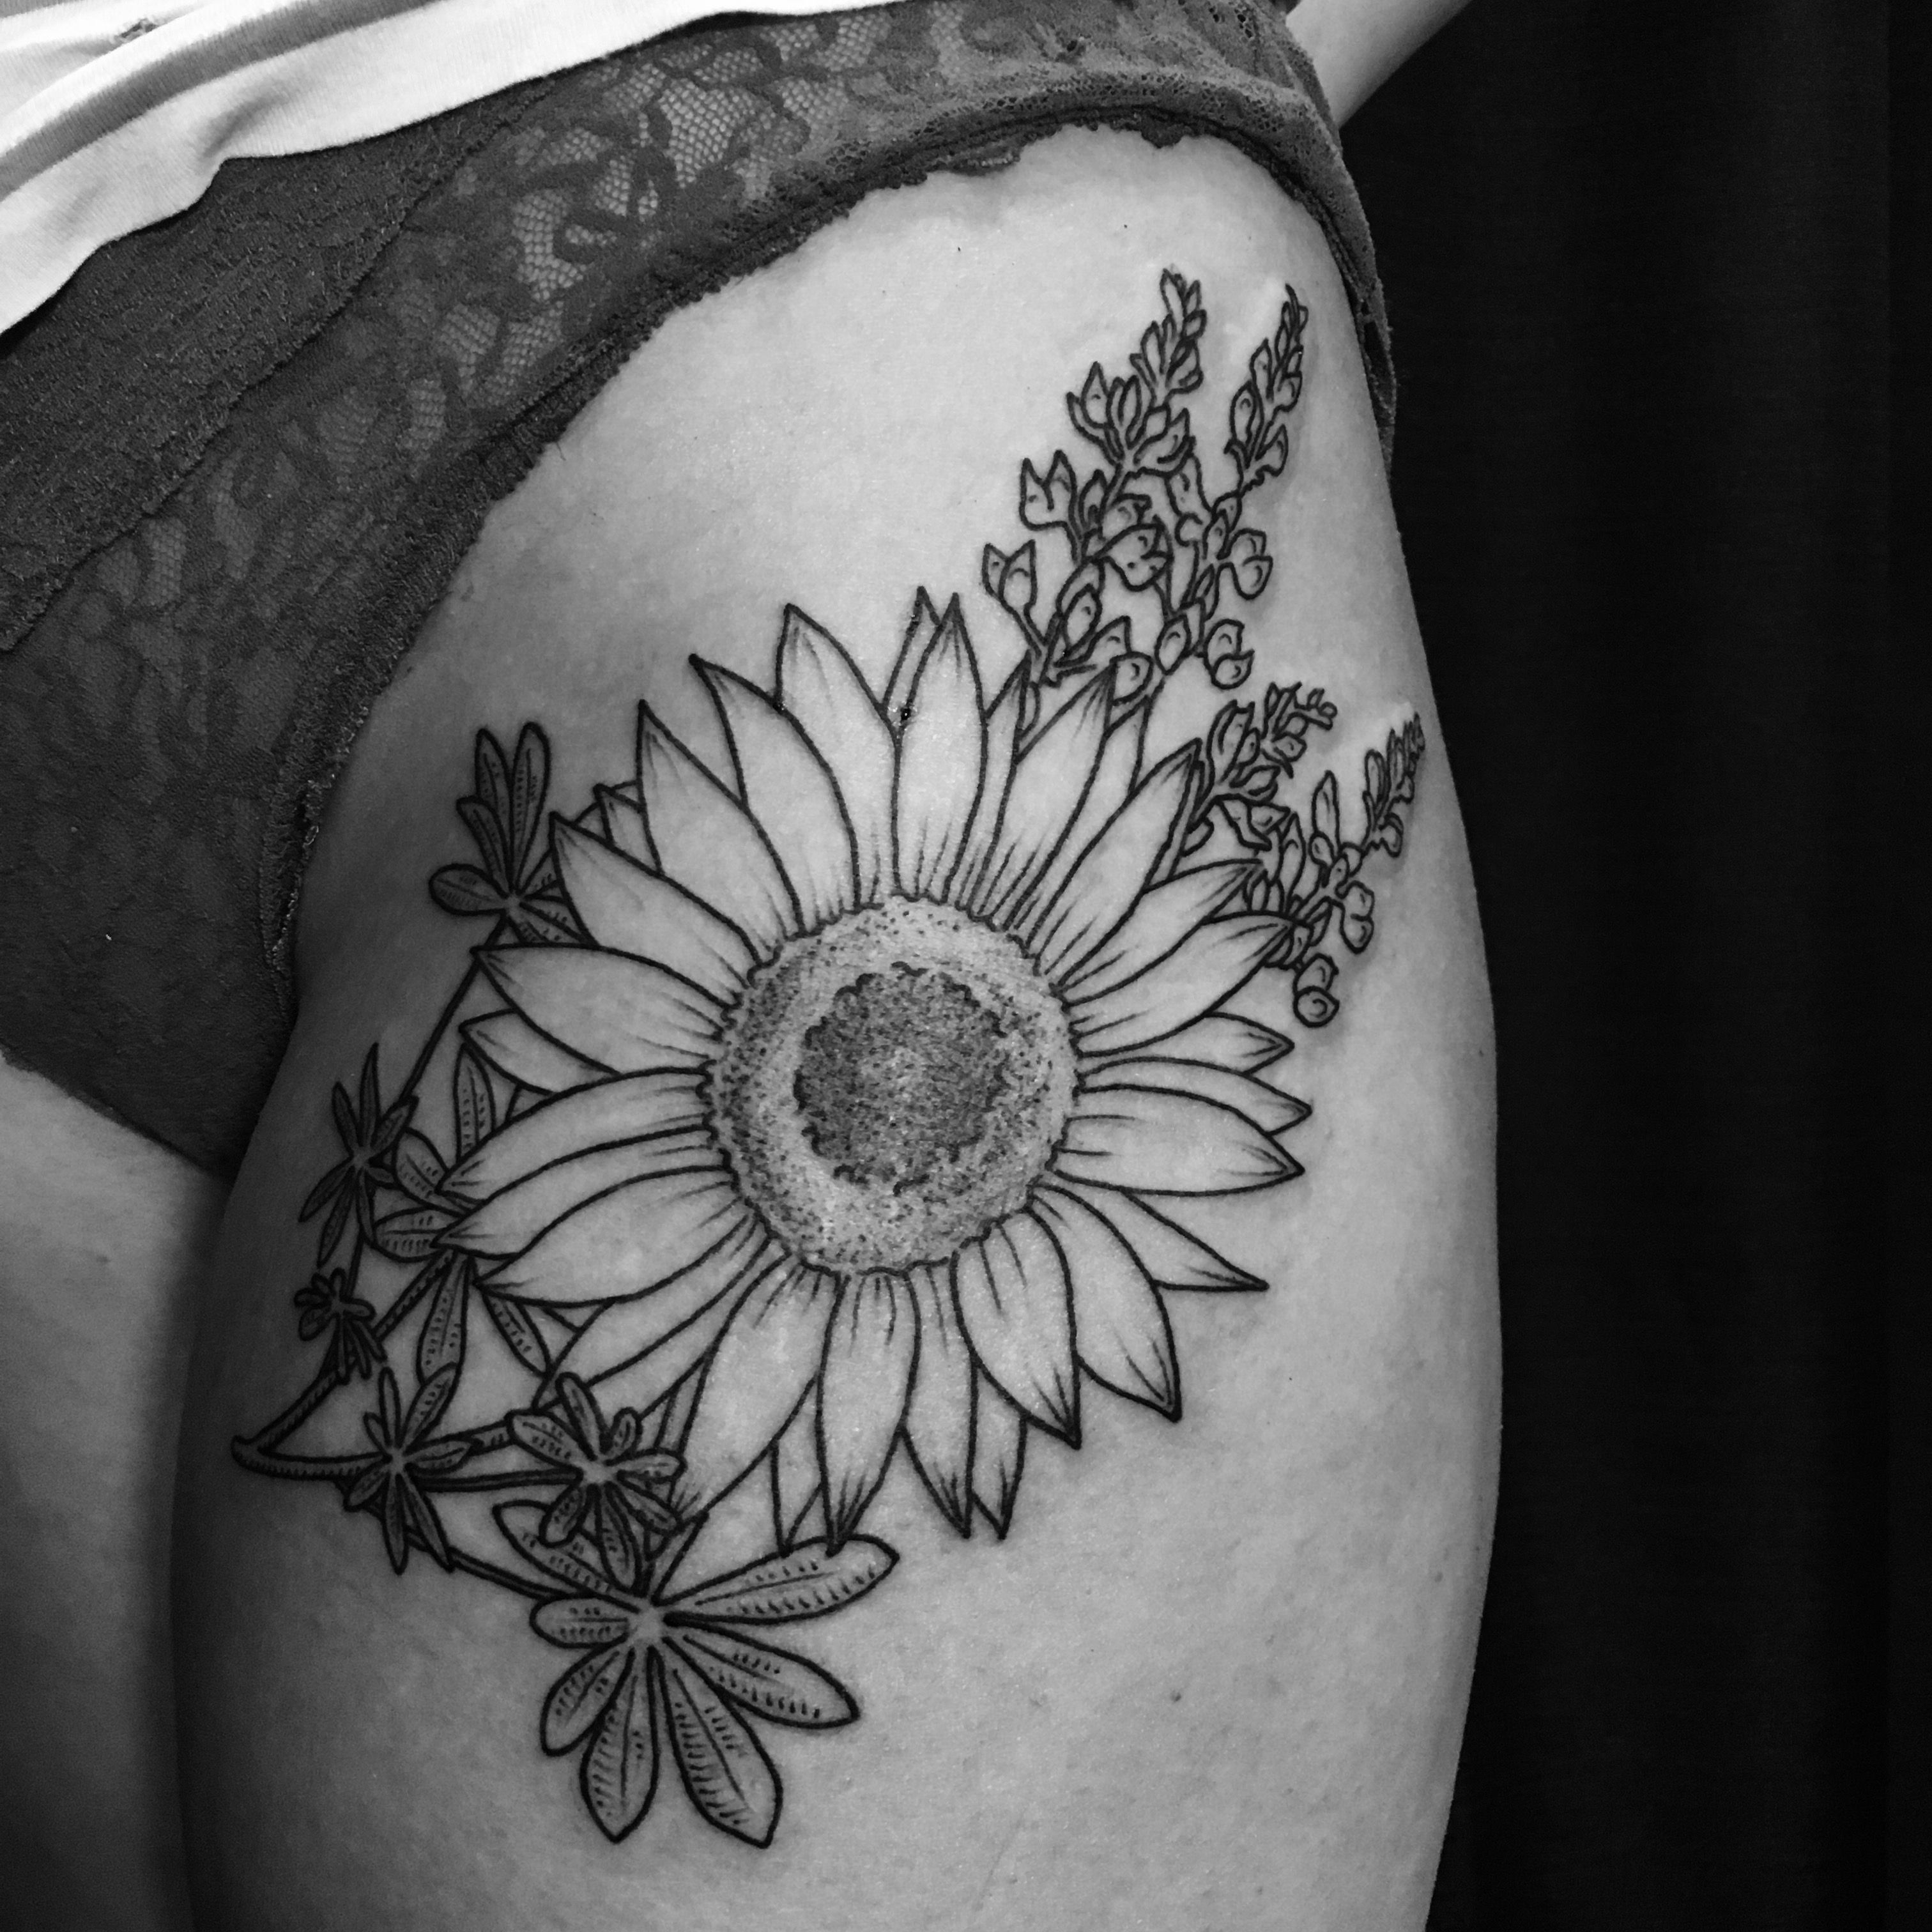 Tattoo Oberschenkel Blumen Sunflower Lupine Upper Thigh Tattoo Tattoos Tattoo Ideen